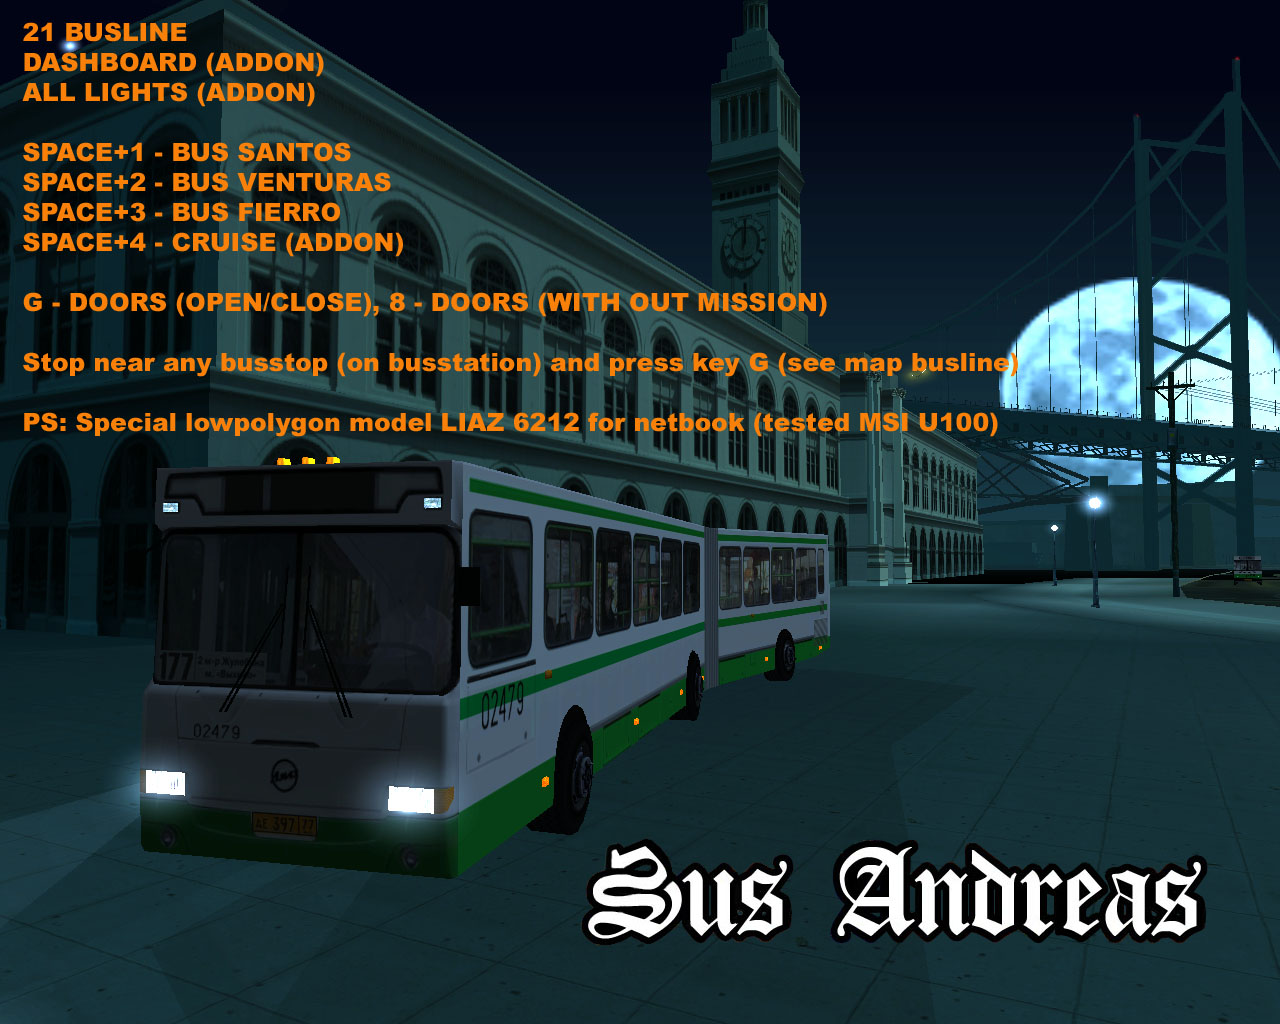 telecharger bus simulator gratuit